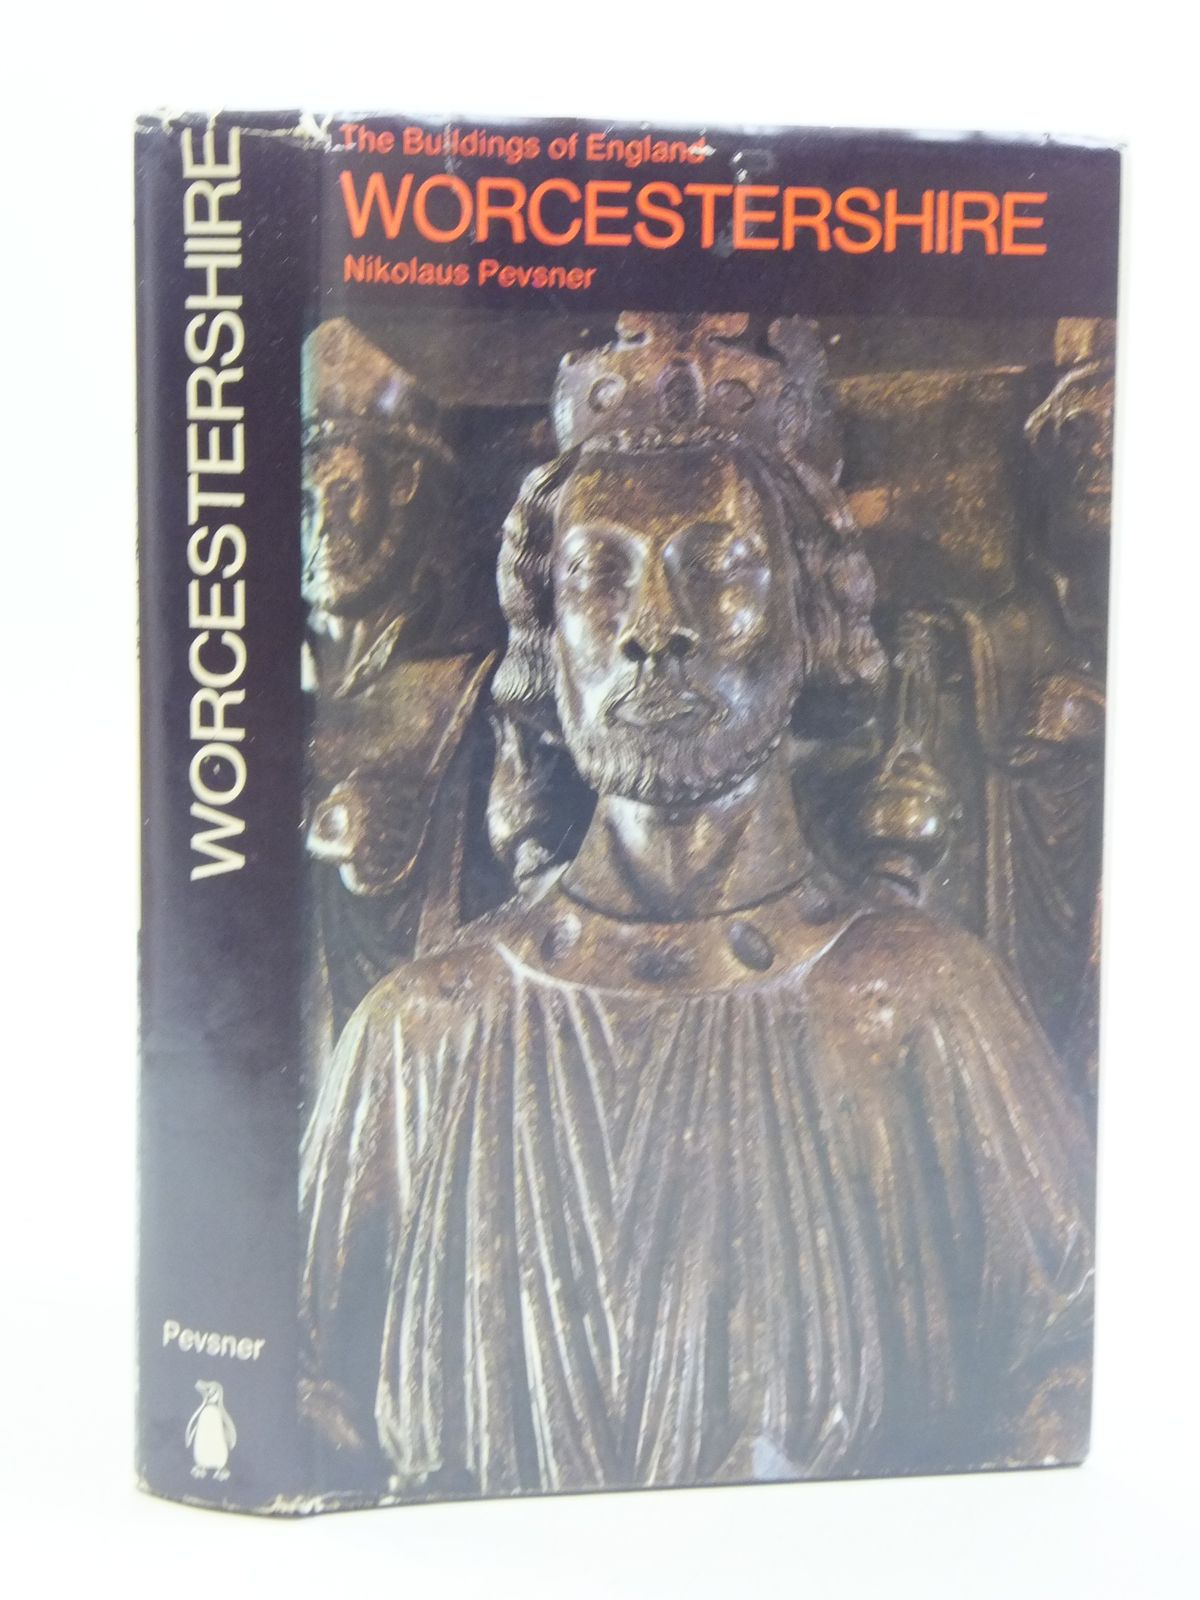 Photo of WORCESTERSHIRE (BUILDINGS OF ENGLAND)